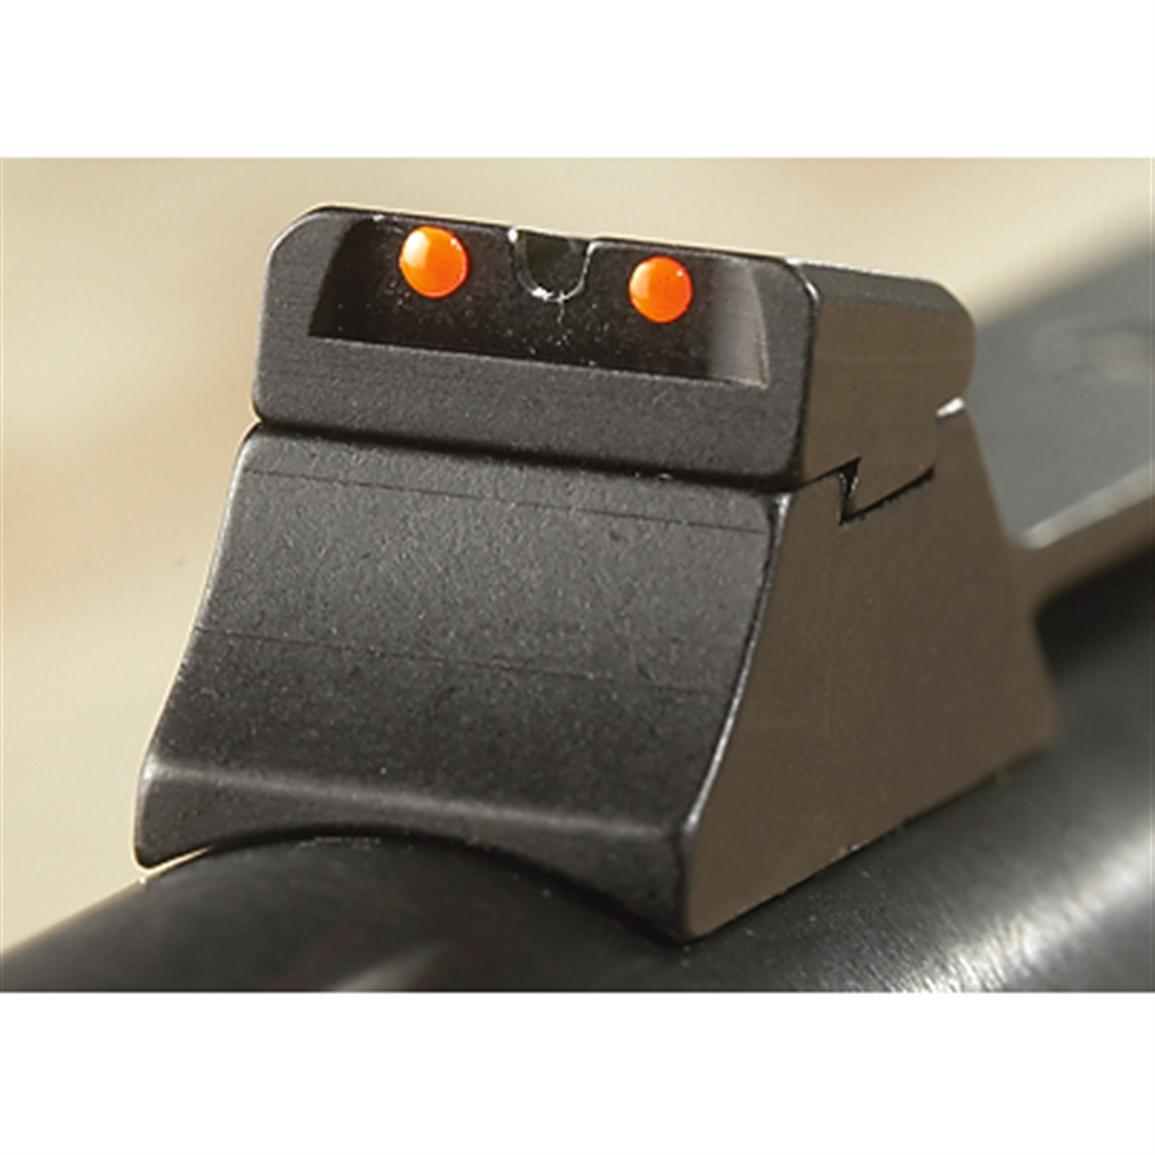 Precise fiber-optic sights